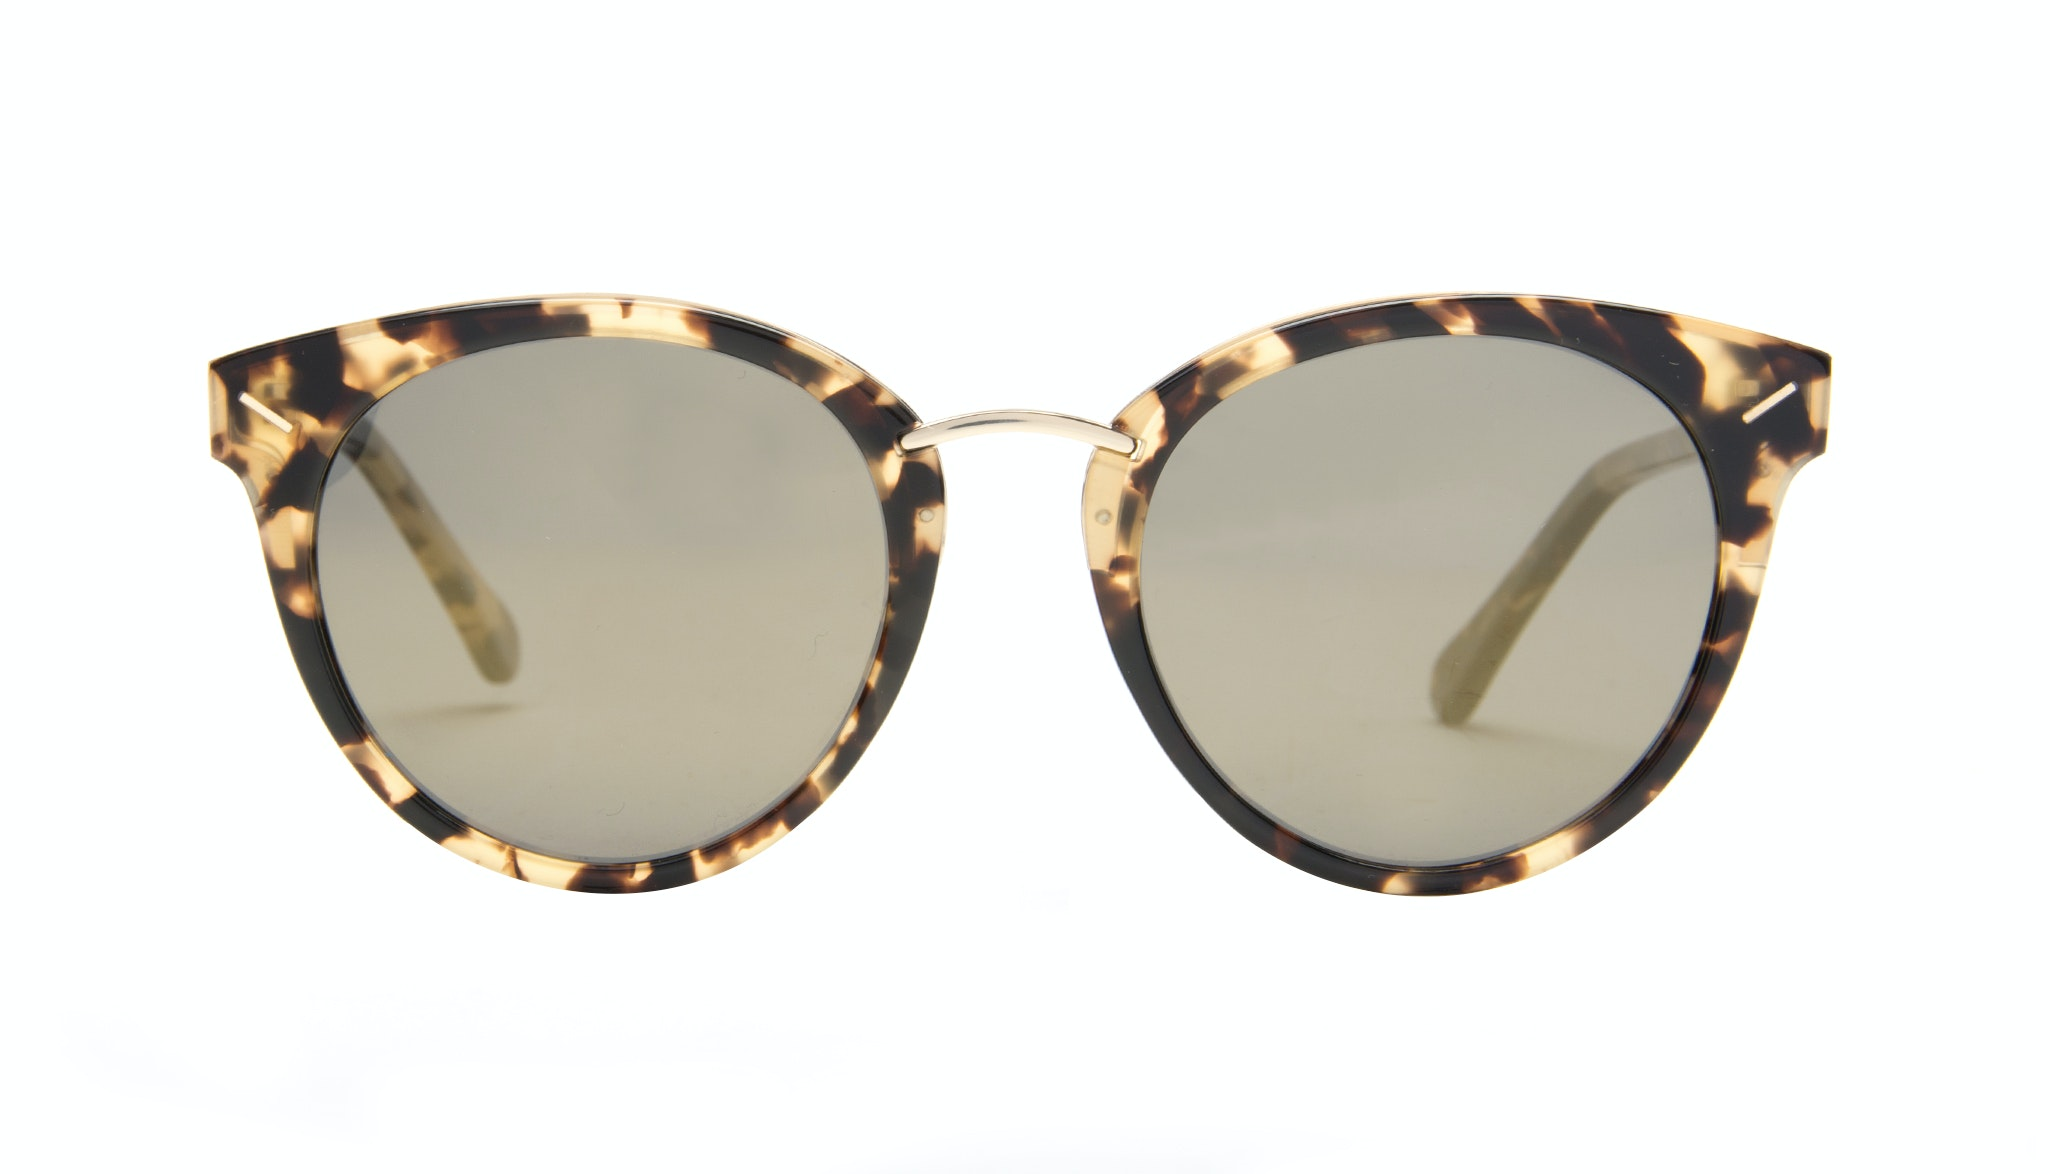 Affordable Fashion Glasses Cat Eye Round Sunglasses Women Element Gold Tort